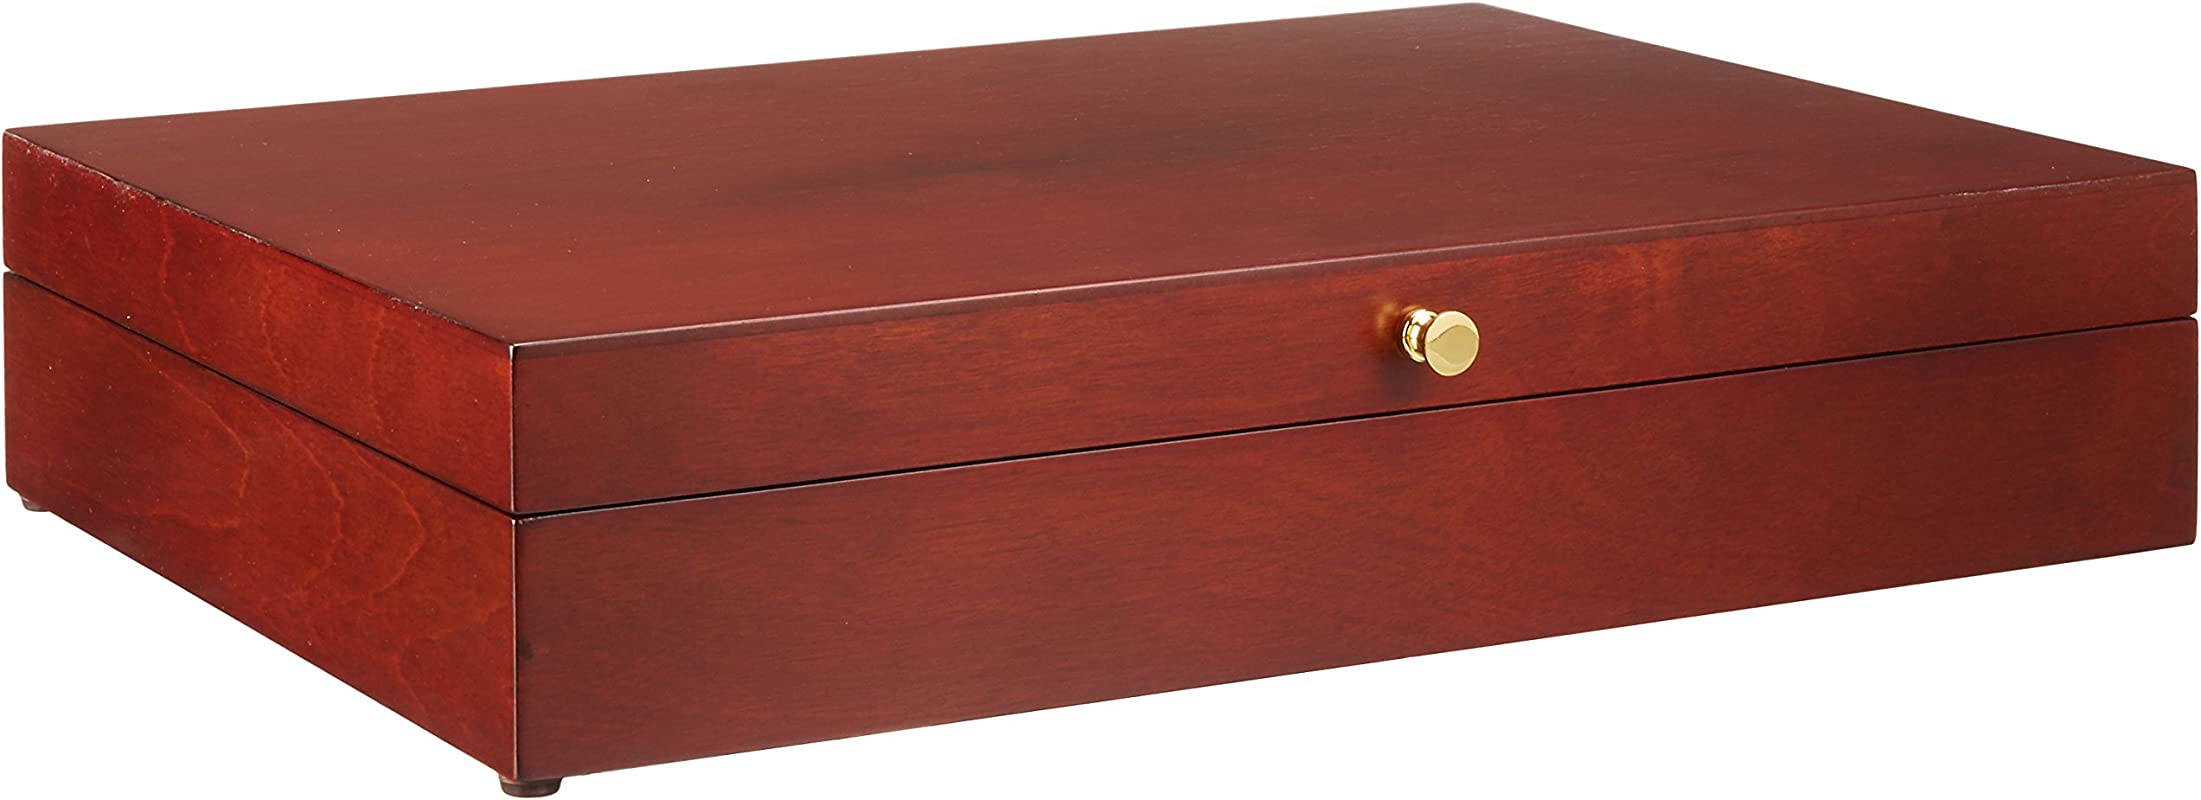 Reed Barton Flatware Chest Mahogany Finish Brown Tarnish Proof Fabric Lining Brass Lid Hardware